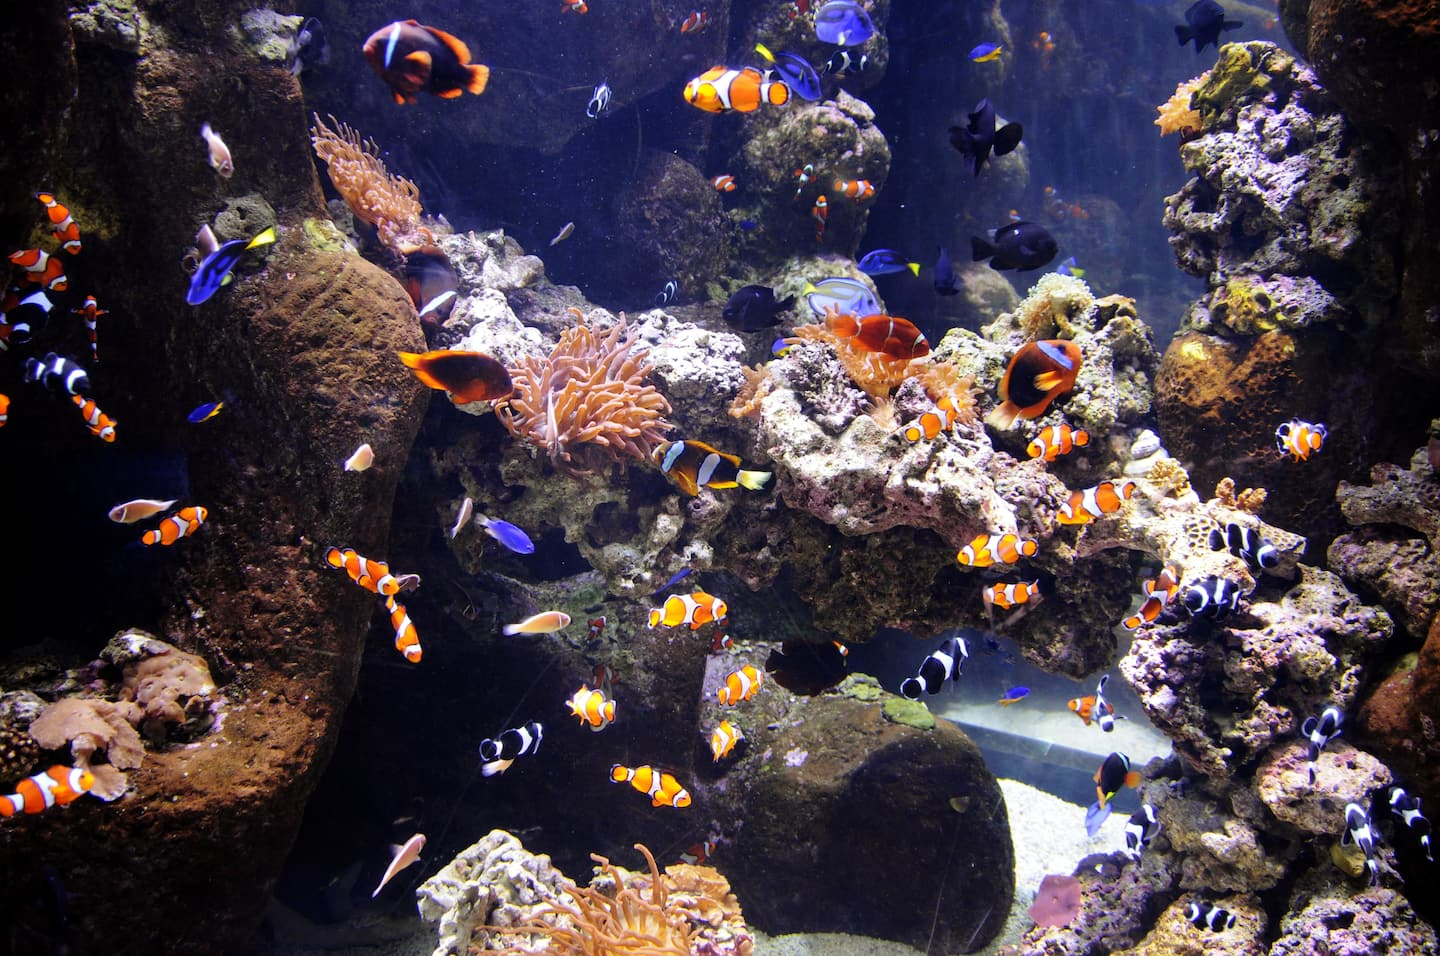 Saltwater aquarium - Where Can I Place An Aquarium